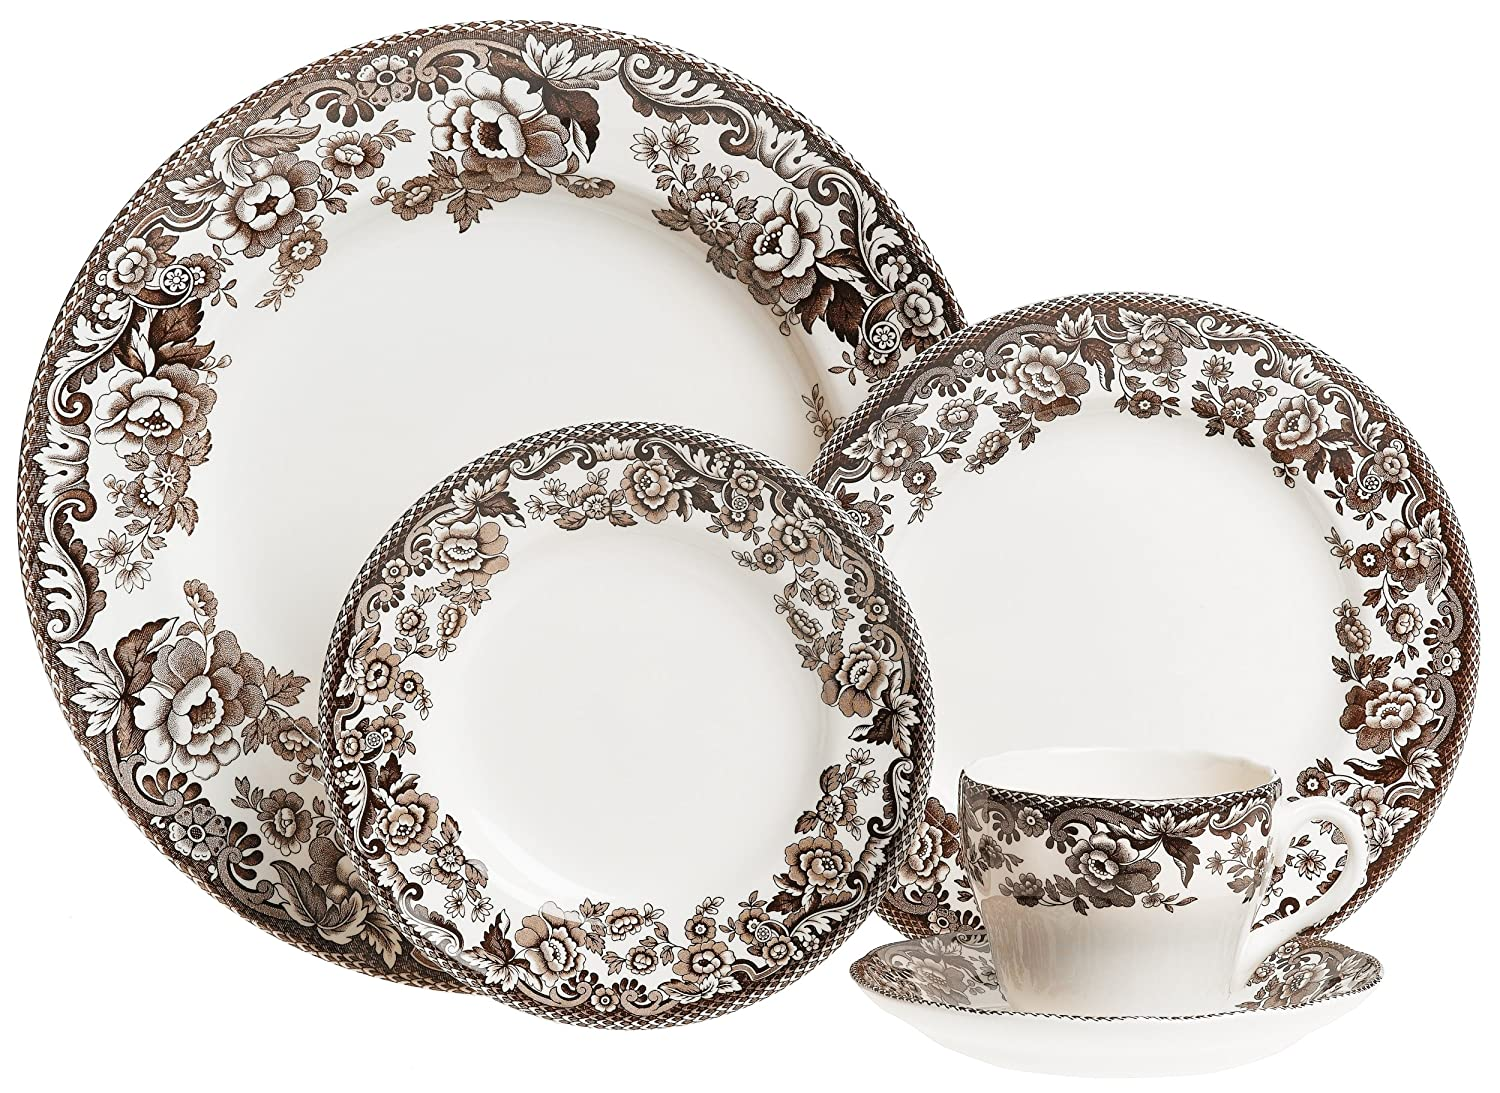 Amazon.com   Spode Delamere 5-Piece Place Setting Service for 1 Spode Delamere Brown Dinnerware Sets  sc 1 st  Amazon.com & Amazon.com   Spode Delamere 5-Piece Place Setting Service for 1 ...